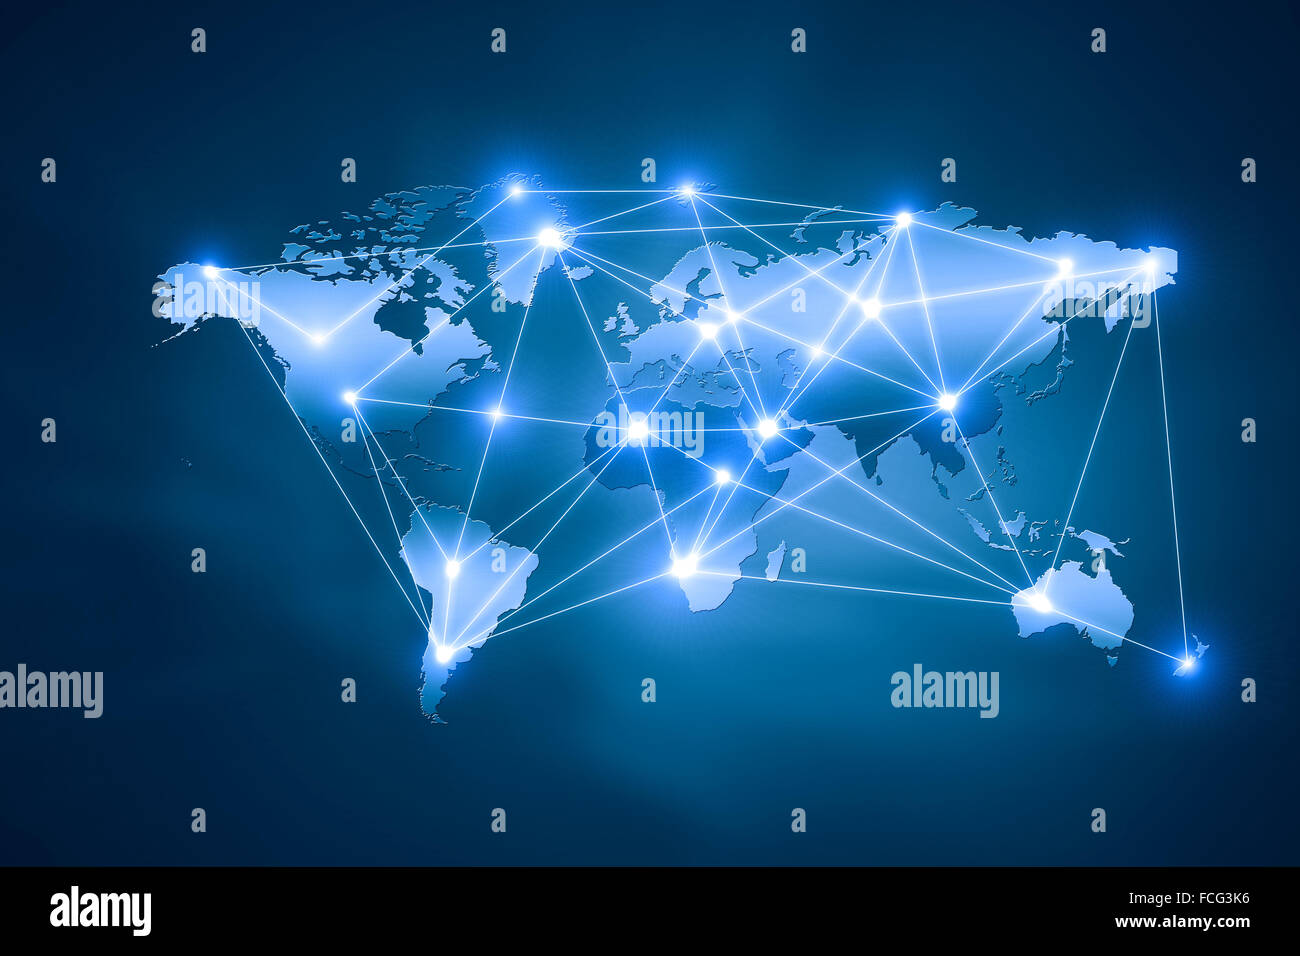 Background digital image of world map with connection lines stock background digital image of world map with connection lines gumiabroncs Choice Image